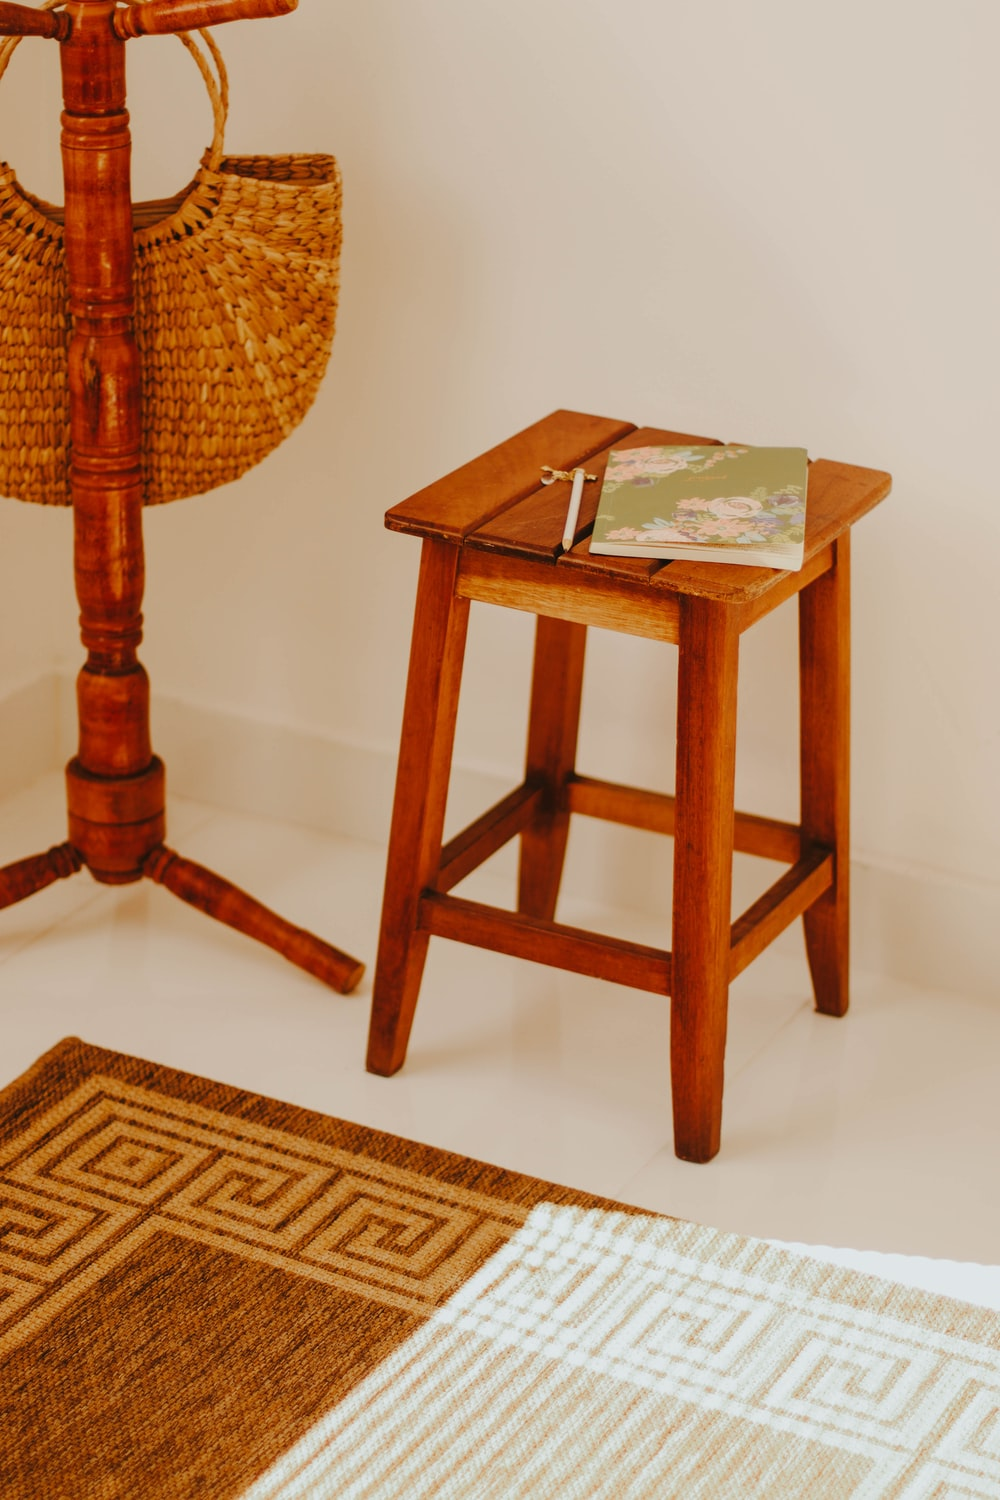 brown wooden table with white and green book on top